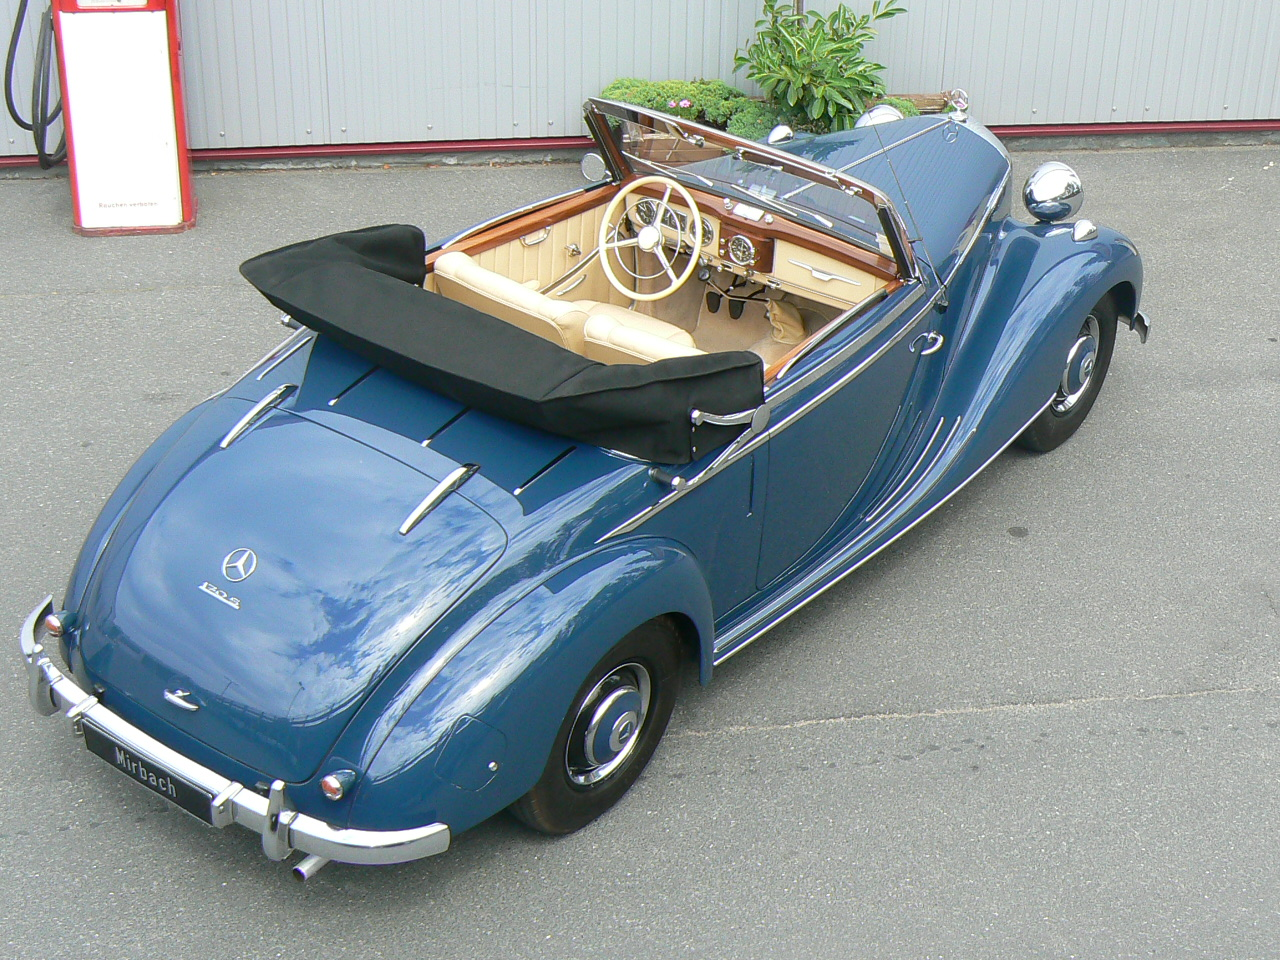 Mercedes Benz 170 S Cabriolet Photos Photogallery With 5